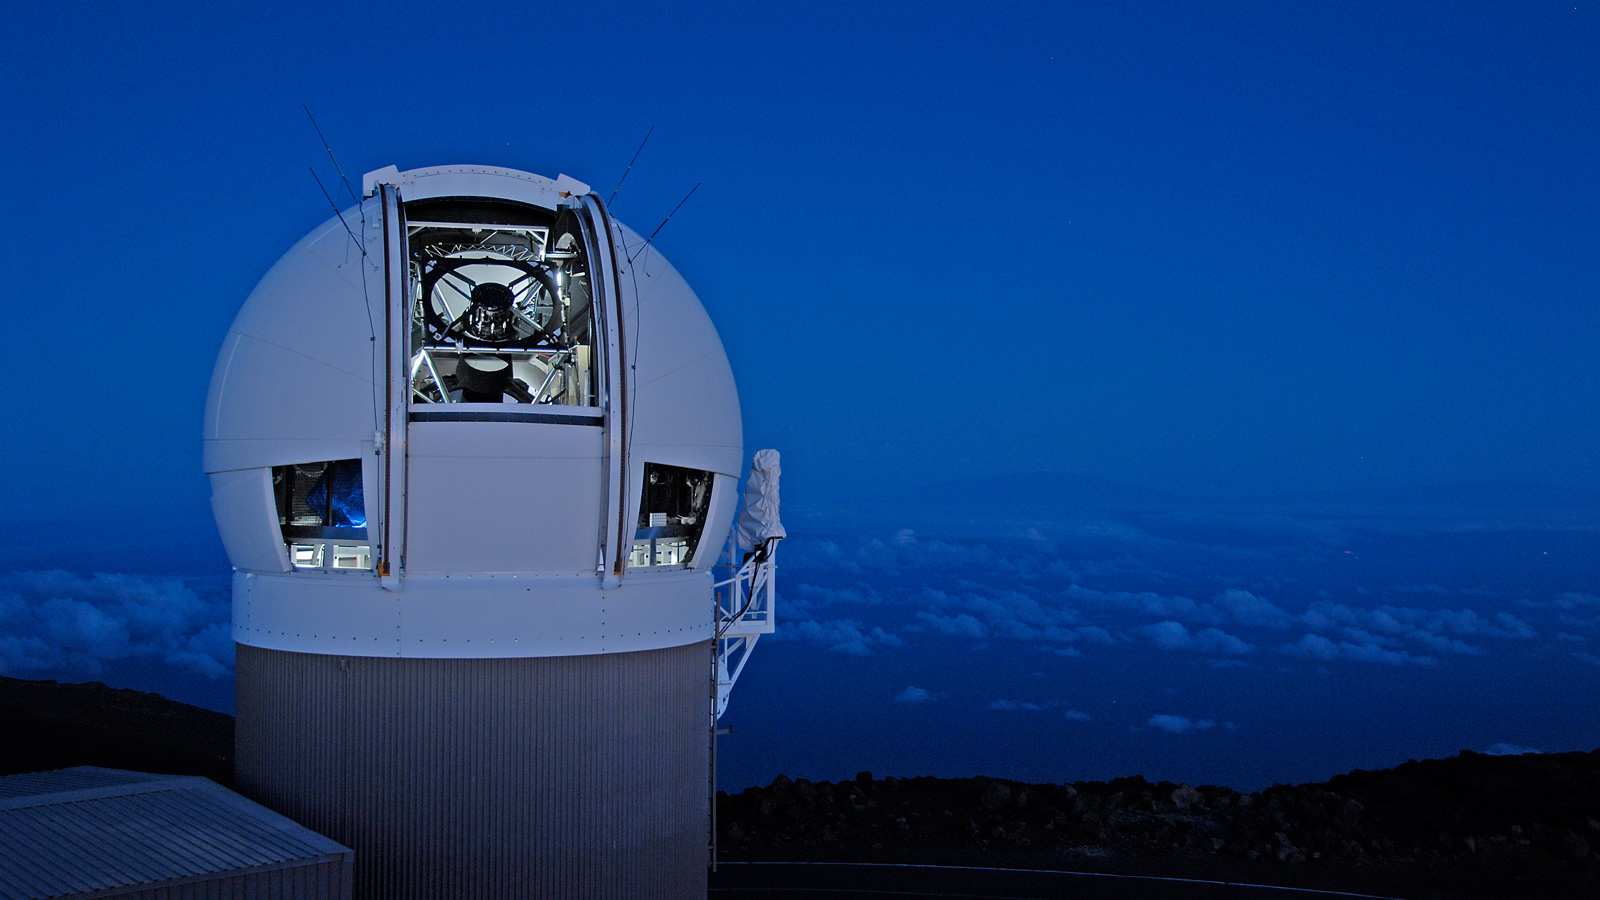 The Panoramic Survey Telescope & Rapid Response System (Pan-STARRS) 1 telescope on Maui's Mount Haleakala, Hawaii